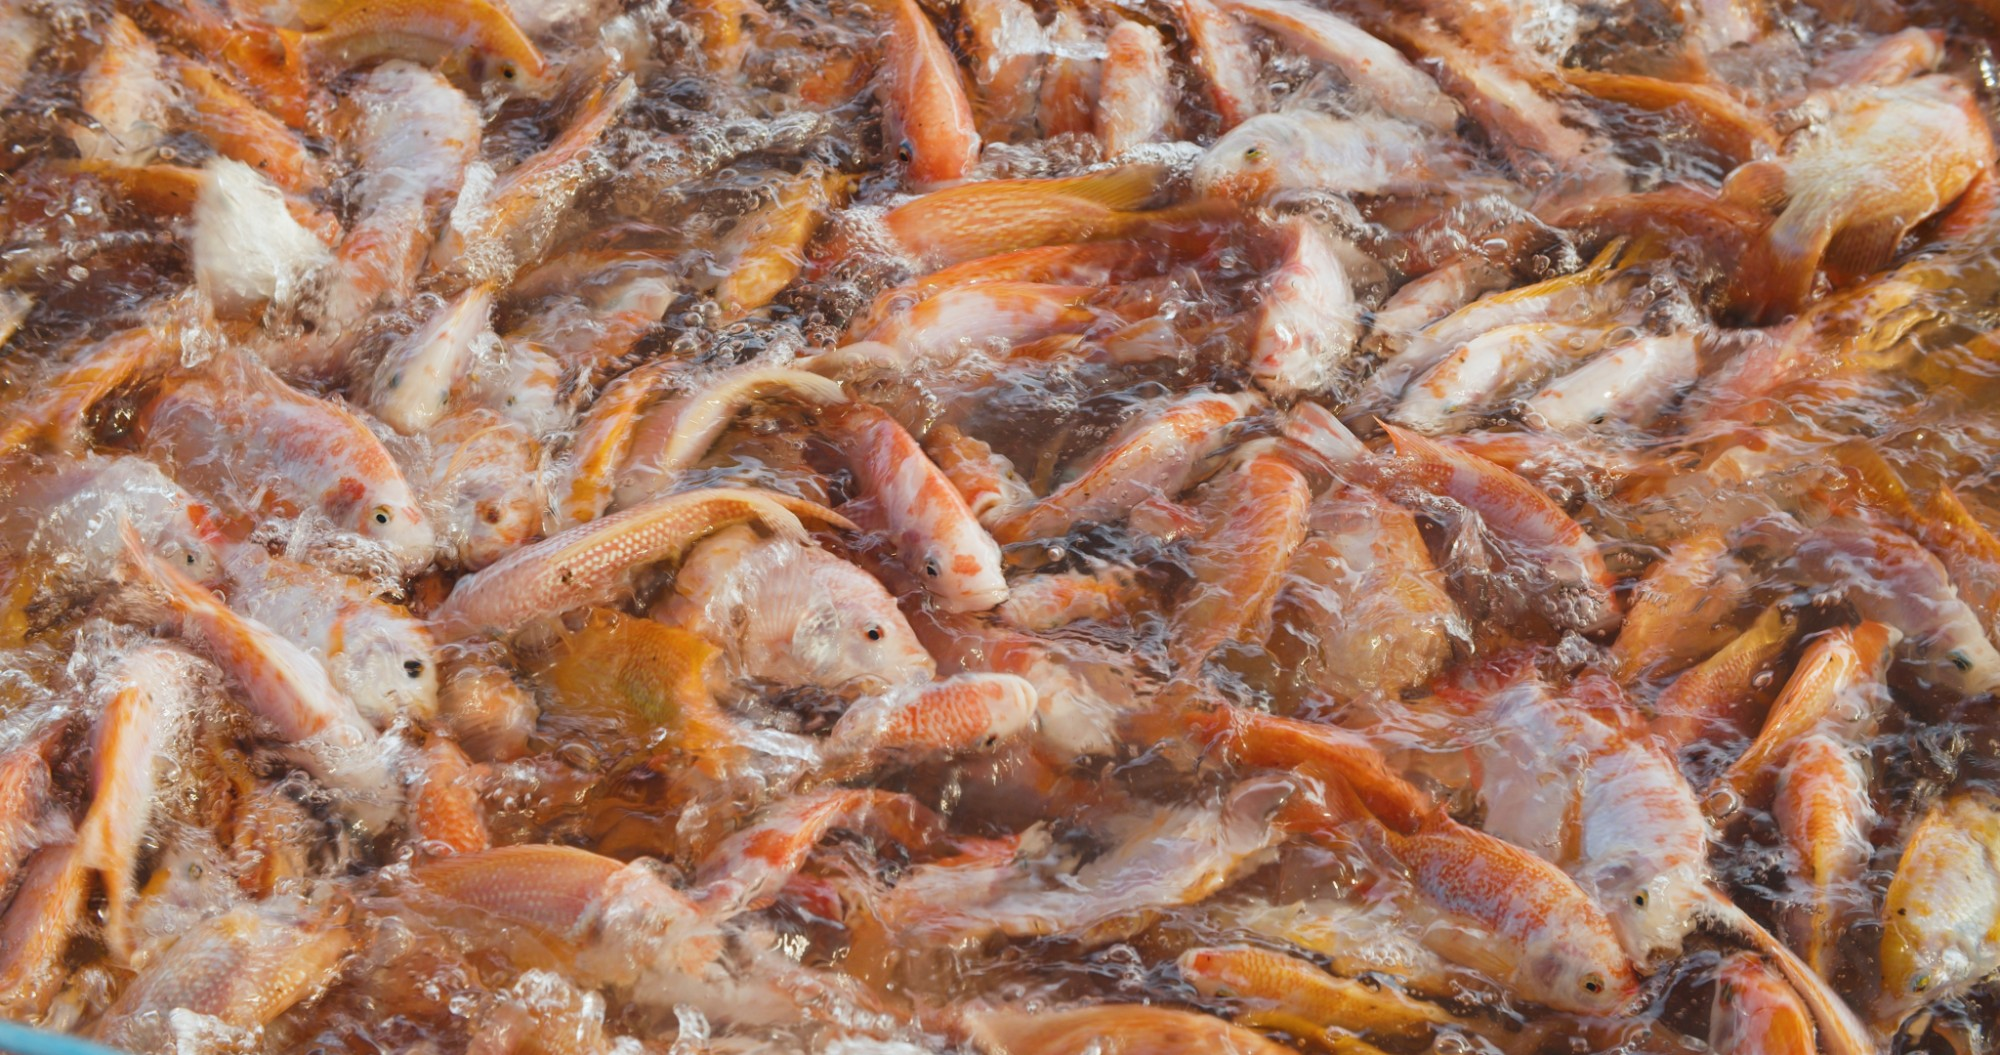 Procedures for prevention and treatment of parasitosis (Flukes and Trichodina ) in Red tilapia